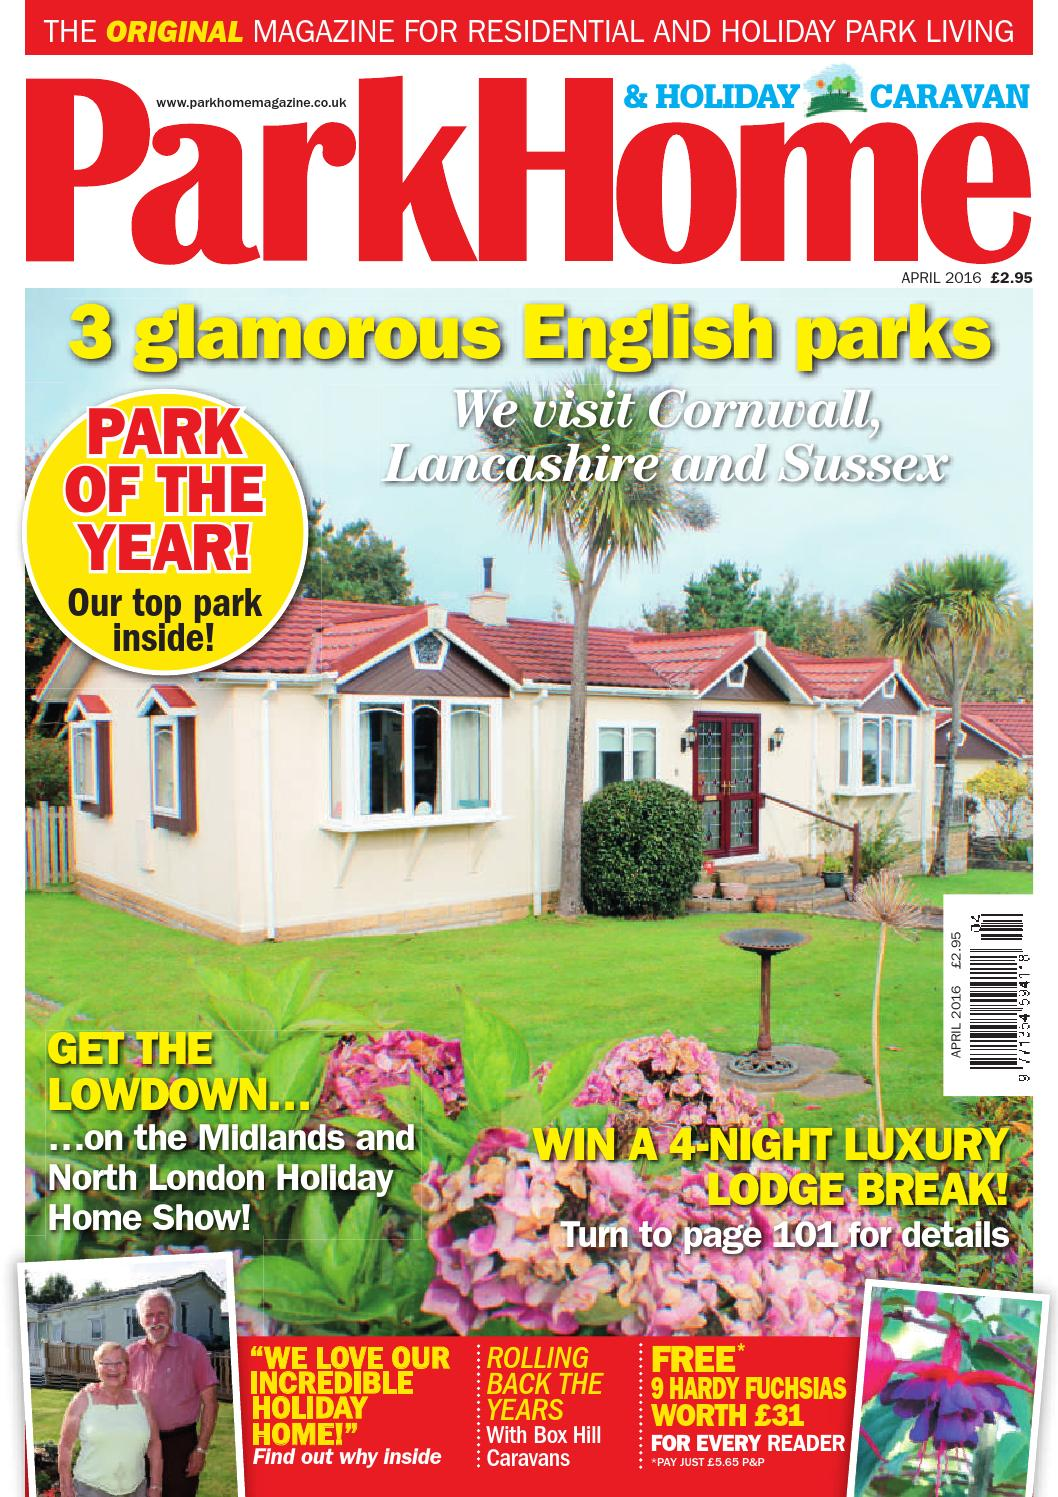 Parkhomes And Holiday Caravan April 2016 By KELSEY Publishing Ltd